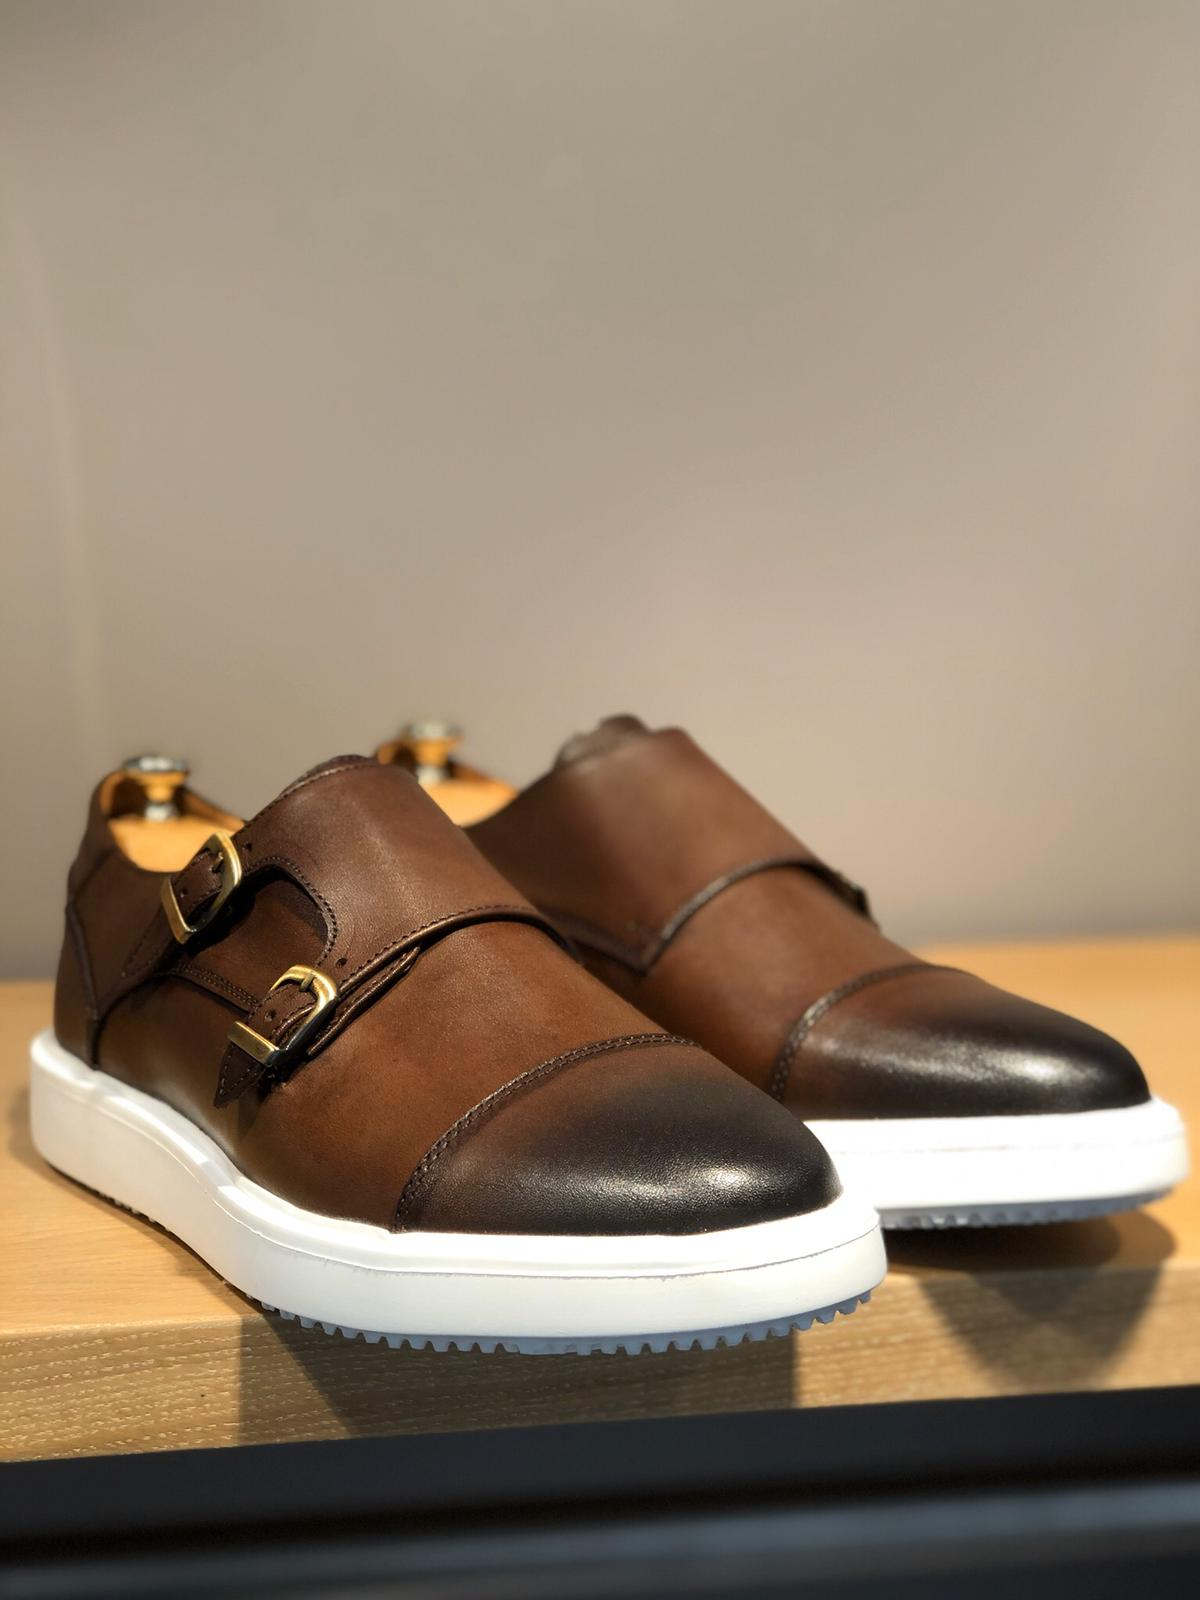 Odessa Brown Monk Strap Cap Toe Shoes